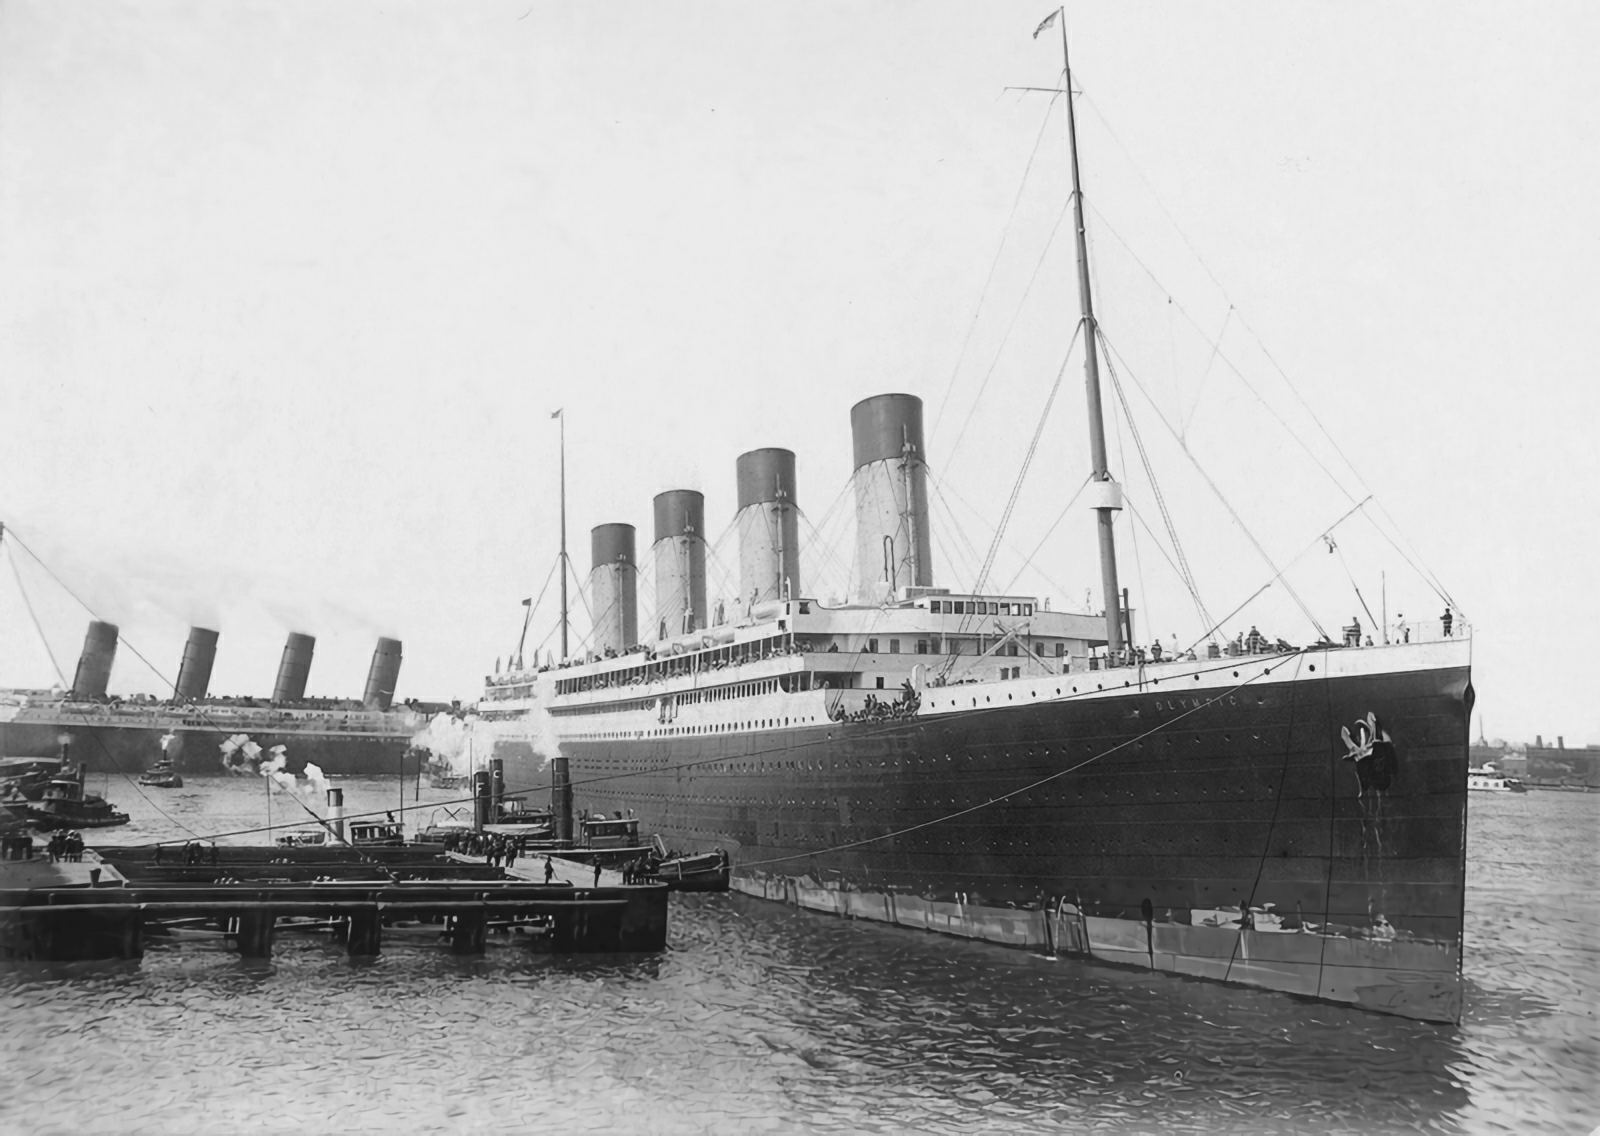 http://upload.wikimedia.org/wikipedia/commons/f/f6/RMS_Olympic%2C_1911.JPG